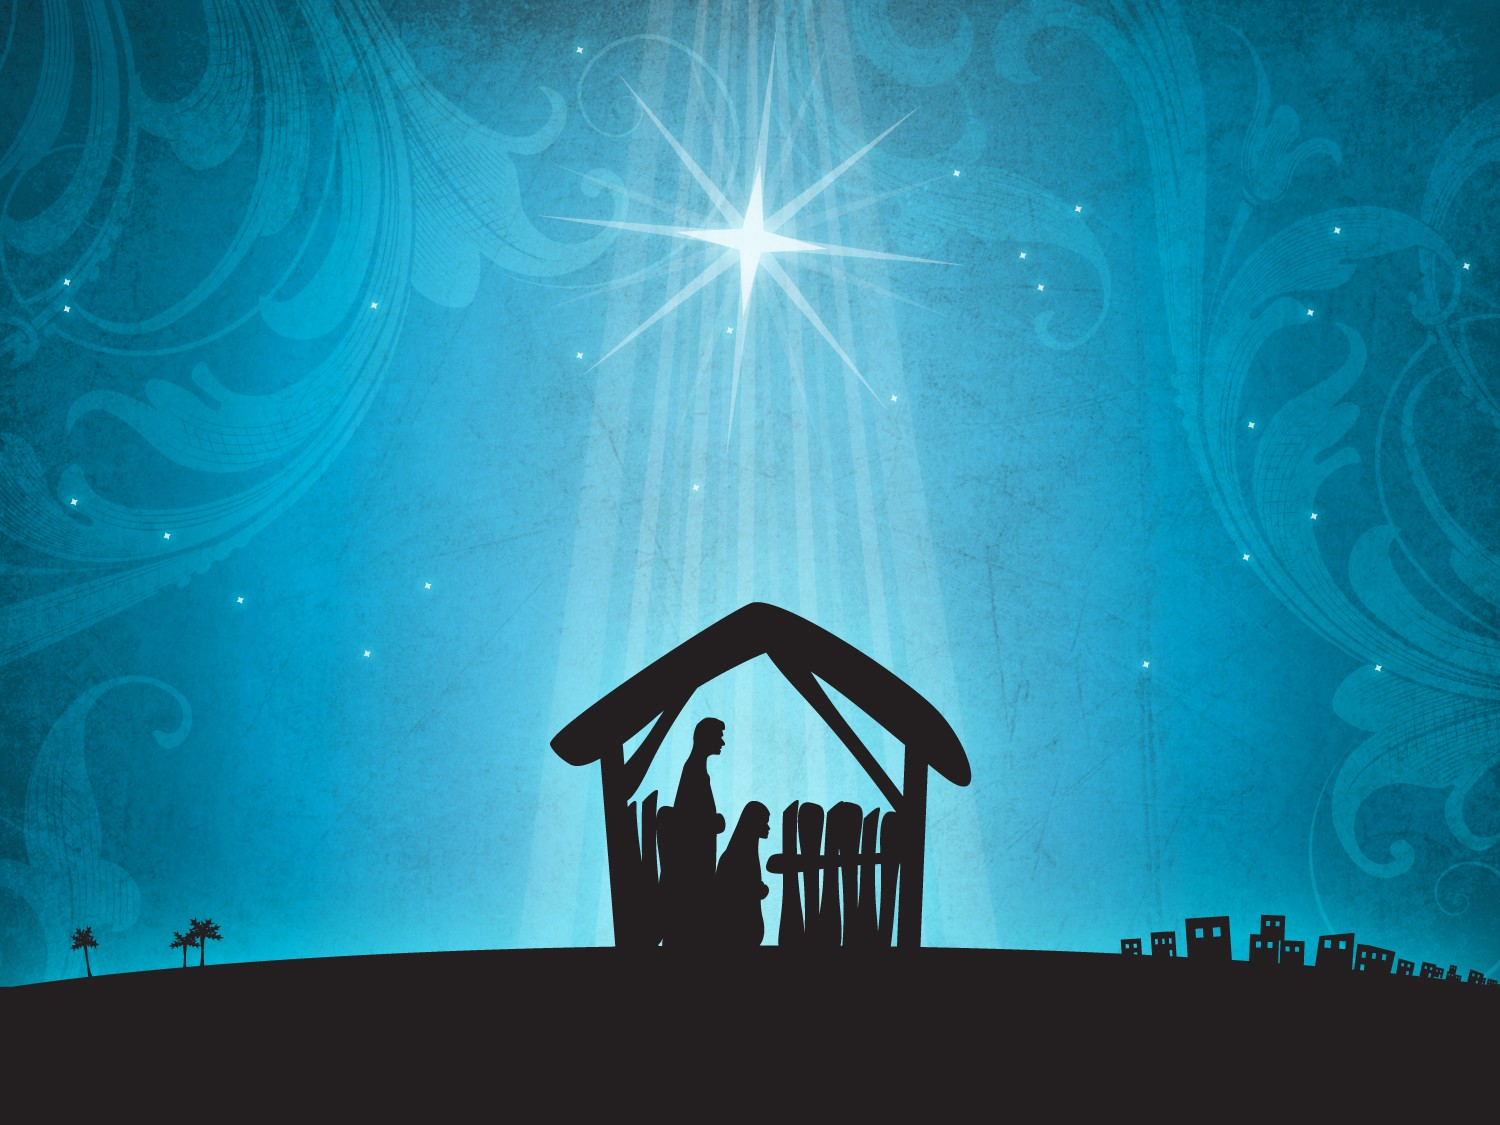 http://3.bp.blogspot.com/_J1T8QiKFw1o/TRQRRFiMqSI/AAAAAAAAAEc/fLykCoGW1e4/s1600/Nativity_Backgrounds.jpg